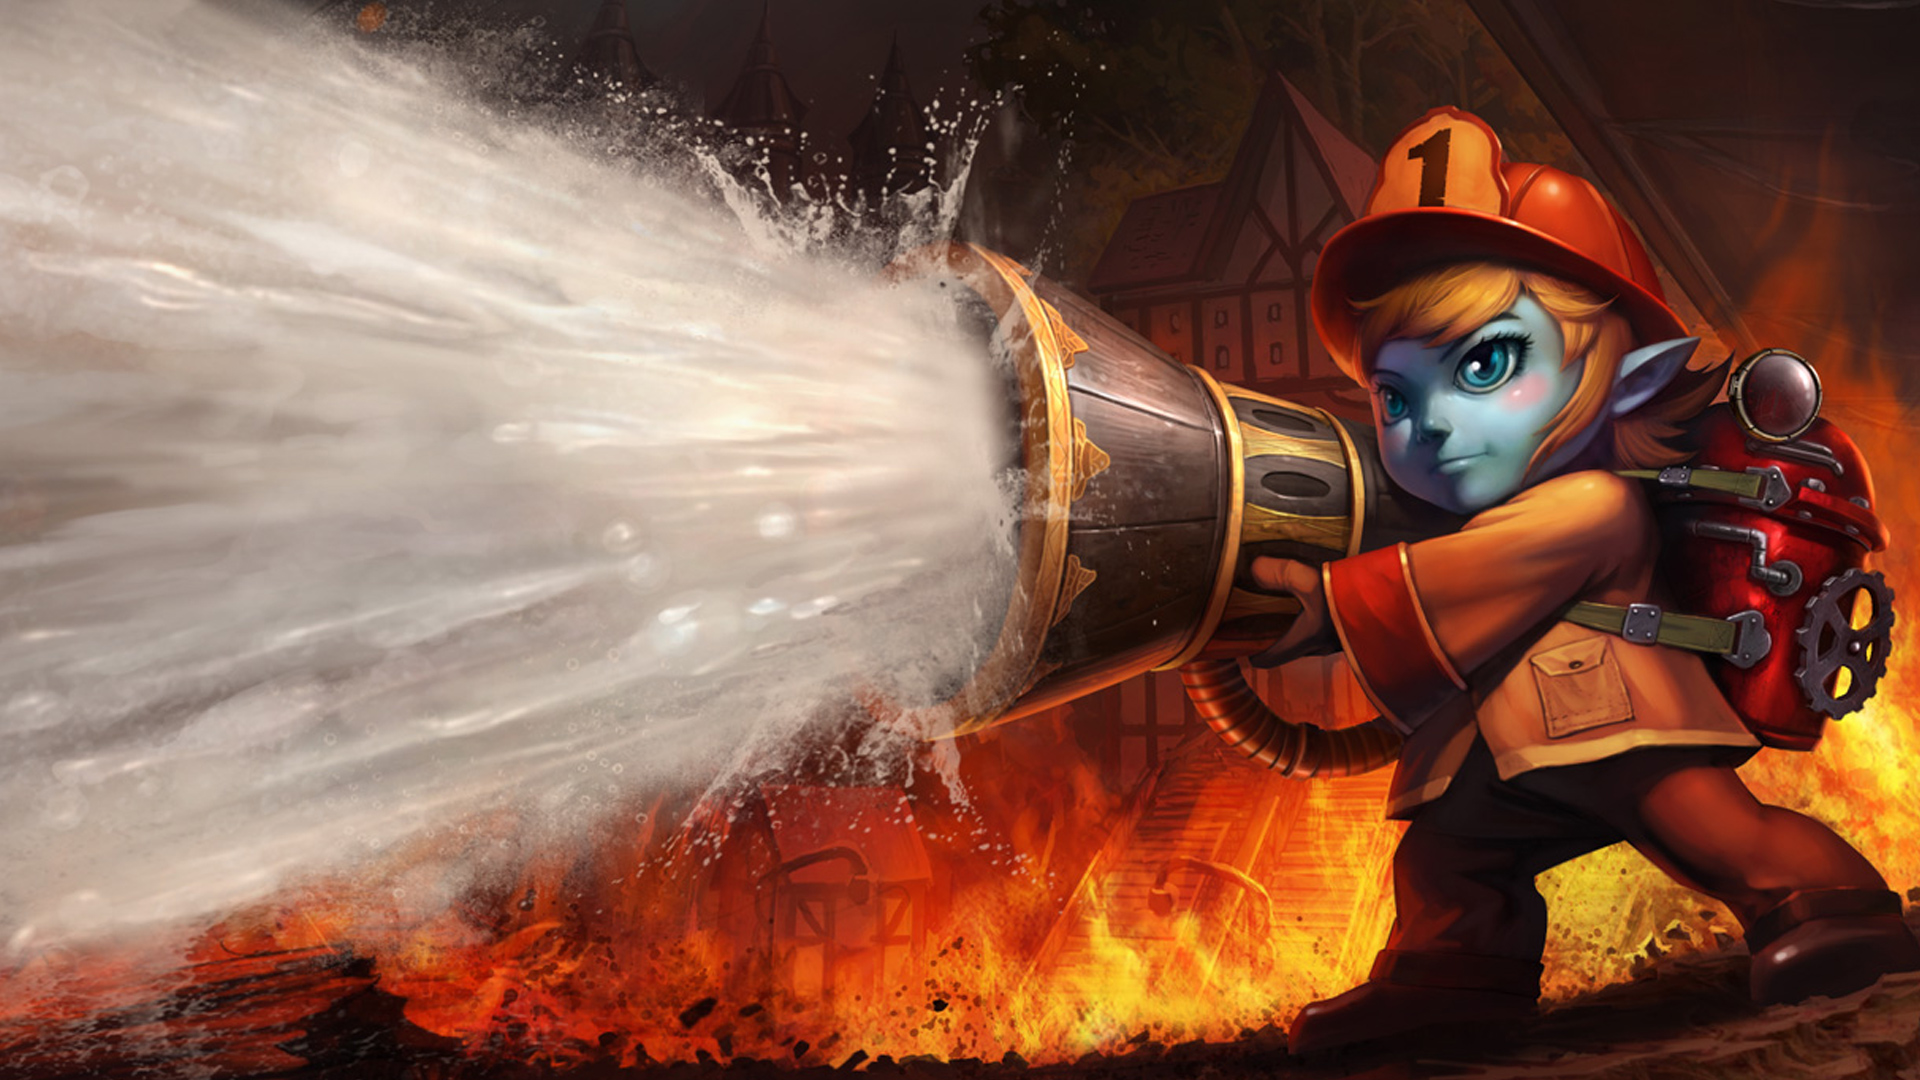 soraka splash firefighter skin league of legends girl hd wallpaper 1920x1080